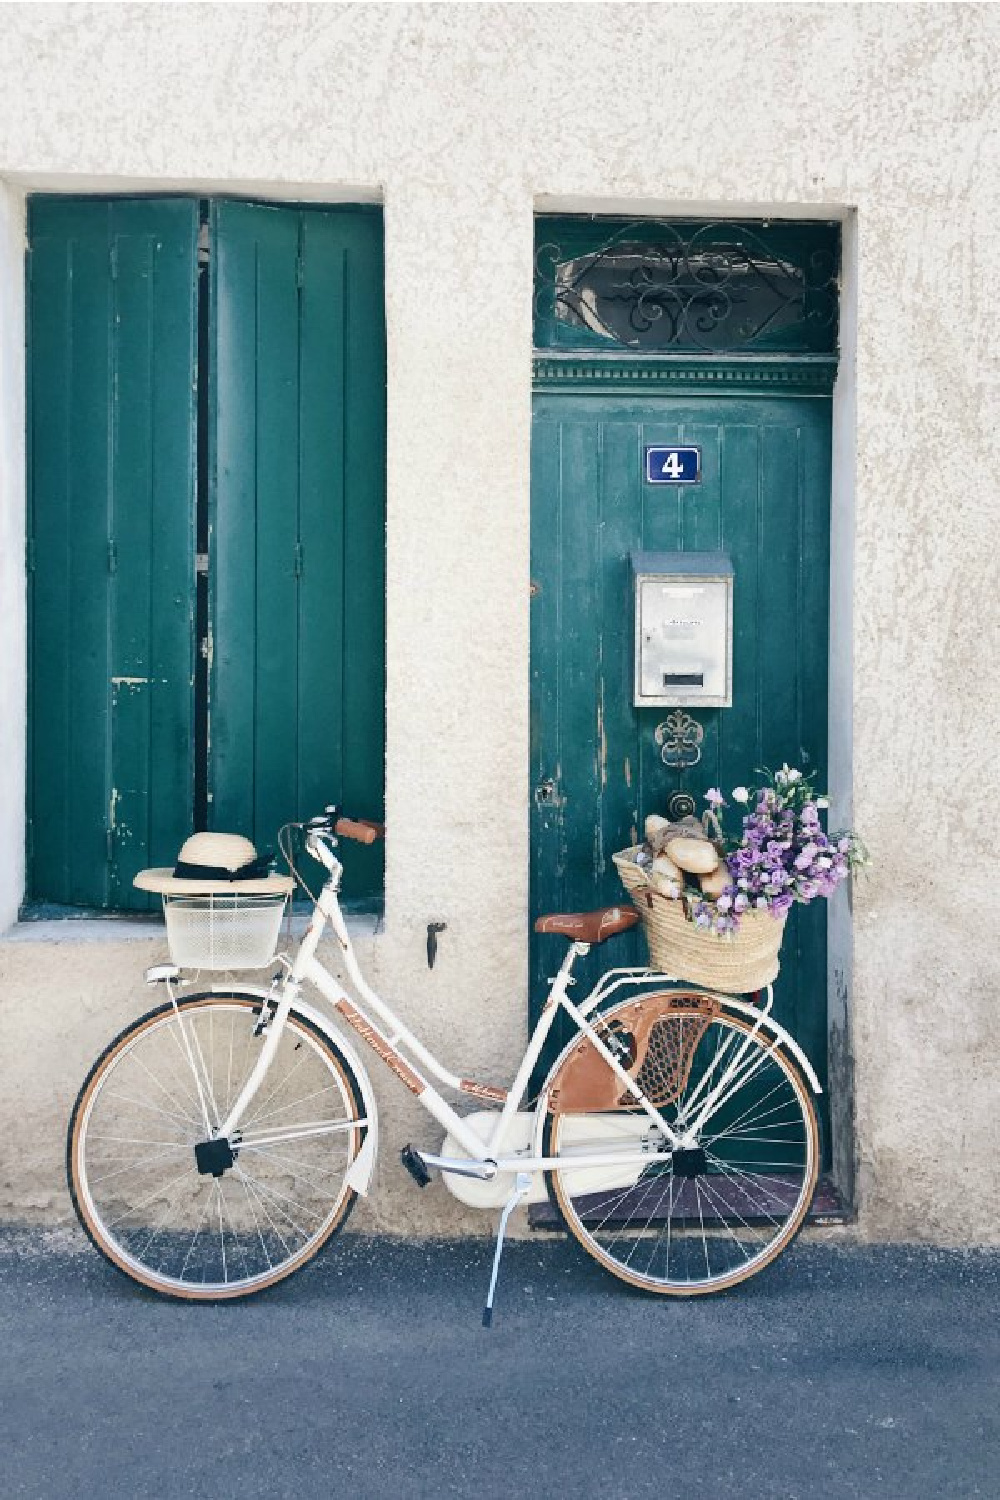 French market basket rests on a white bicycle outside of a rustic home with green shutters. Come discover beautiful French Farmhouse Design Inspiration from Vivi et Margot. #frenchfarmhouse #bicycle #marketbasket